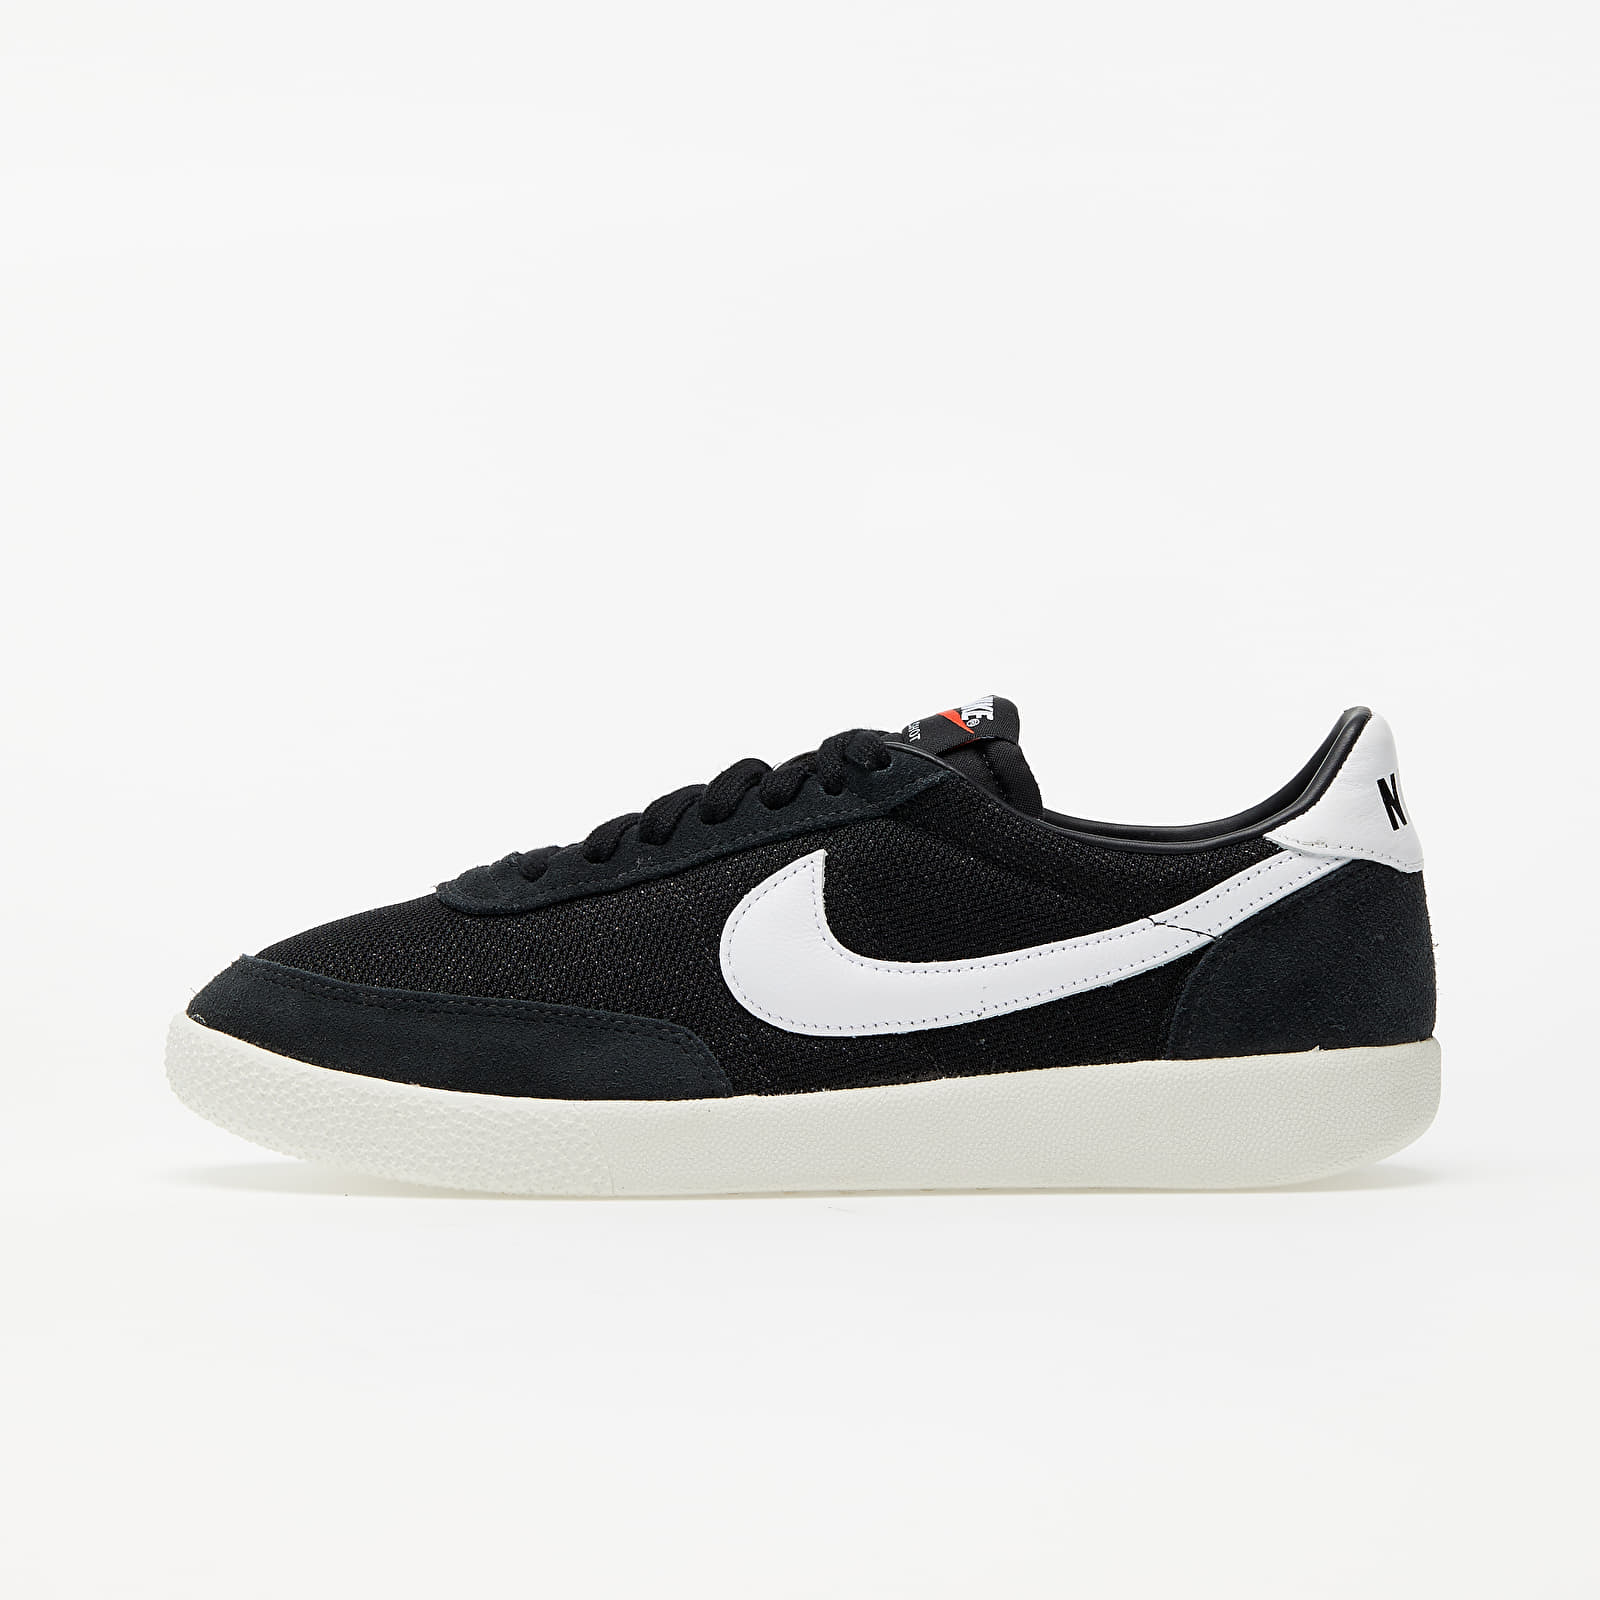 Nike Killshot OG Black/ White-Sail-Team Orange EUR 45.5